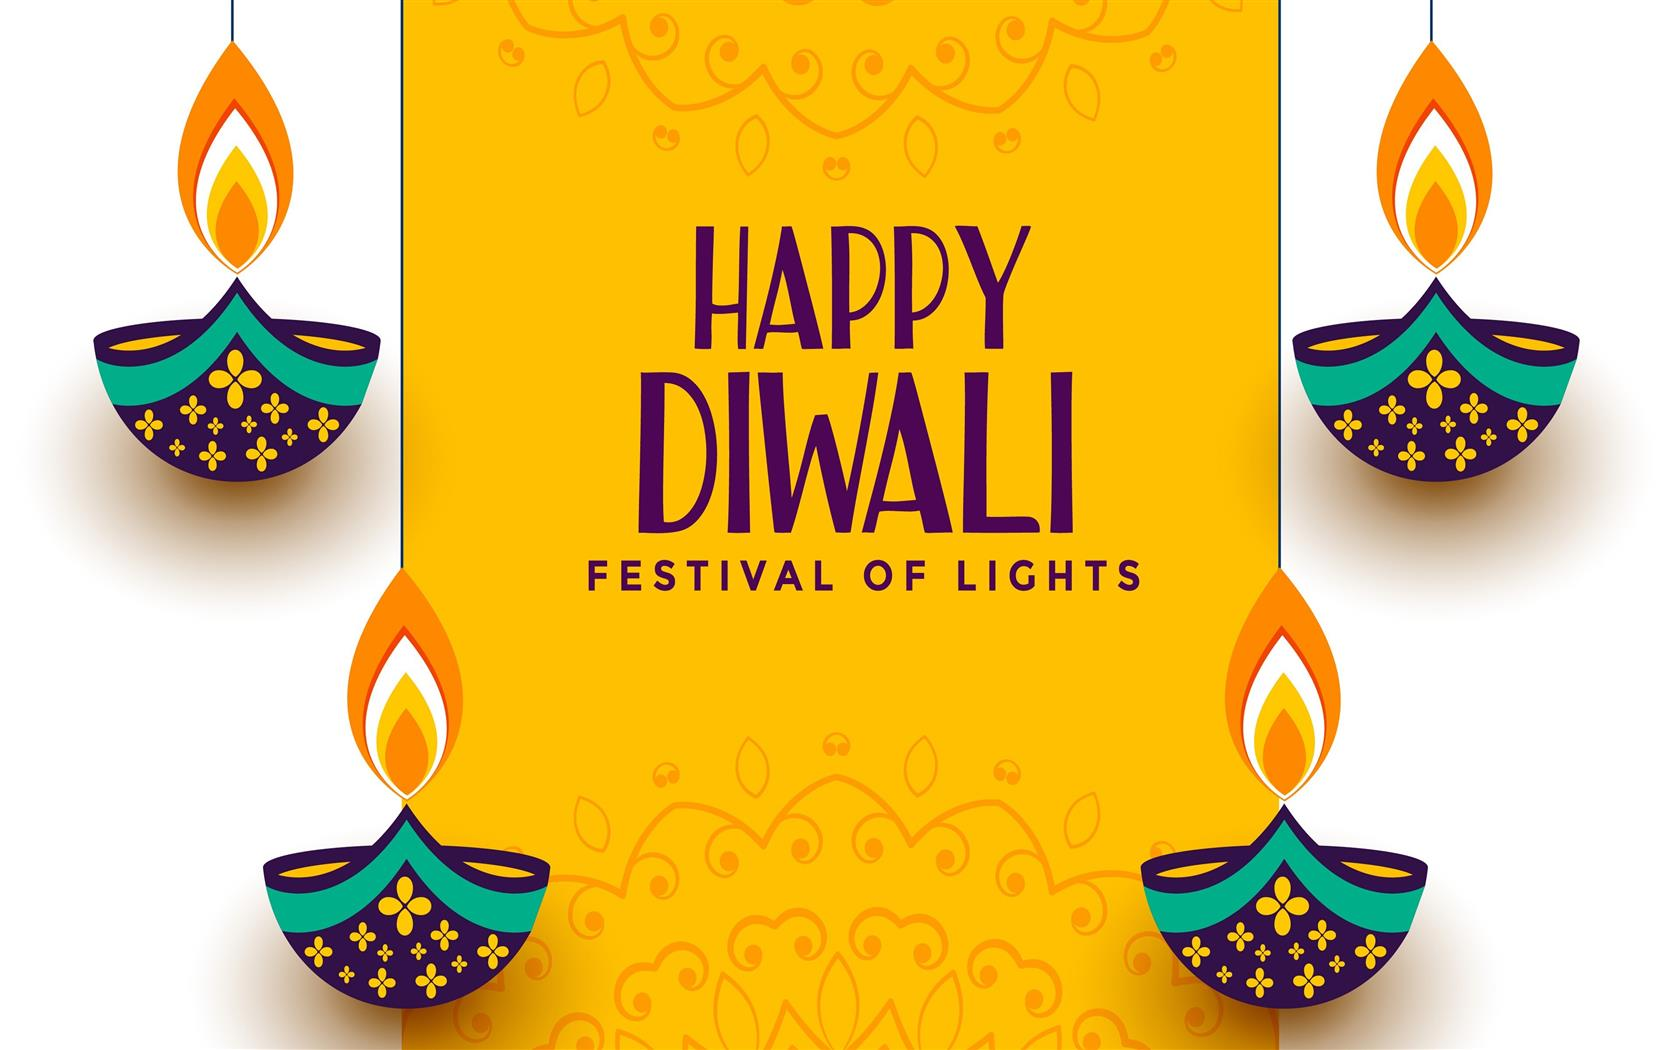 1680x1050 Festival of Lights Diwali 2019 Yellow Background 4K Wallpaper